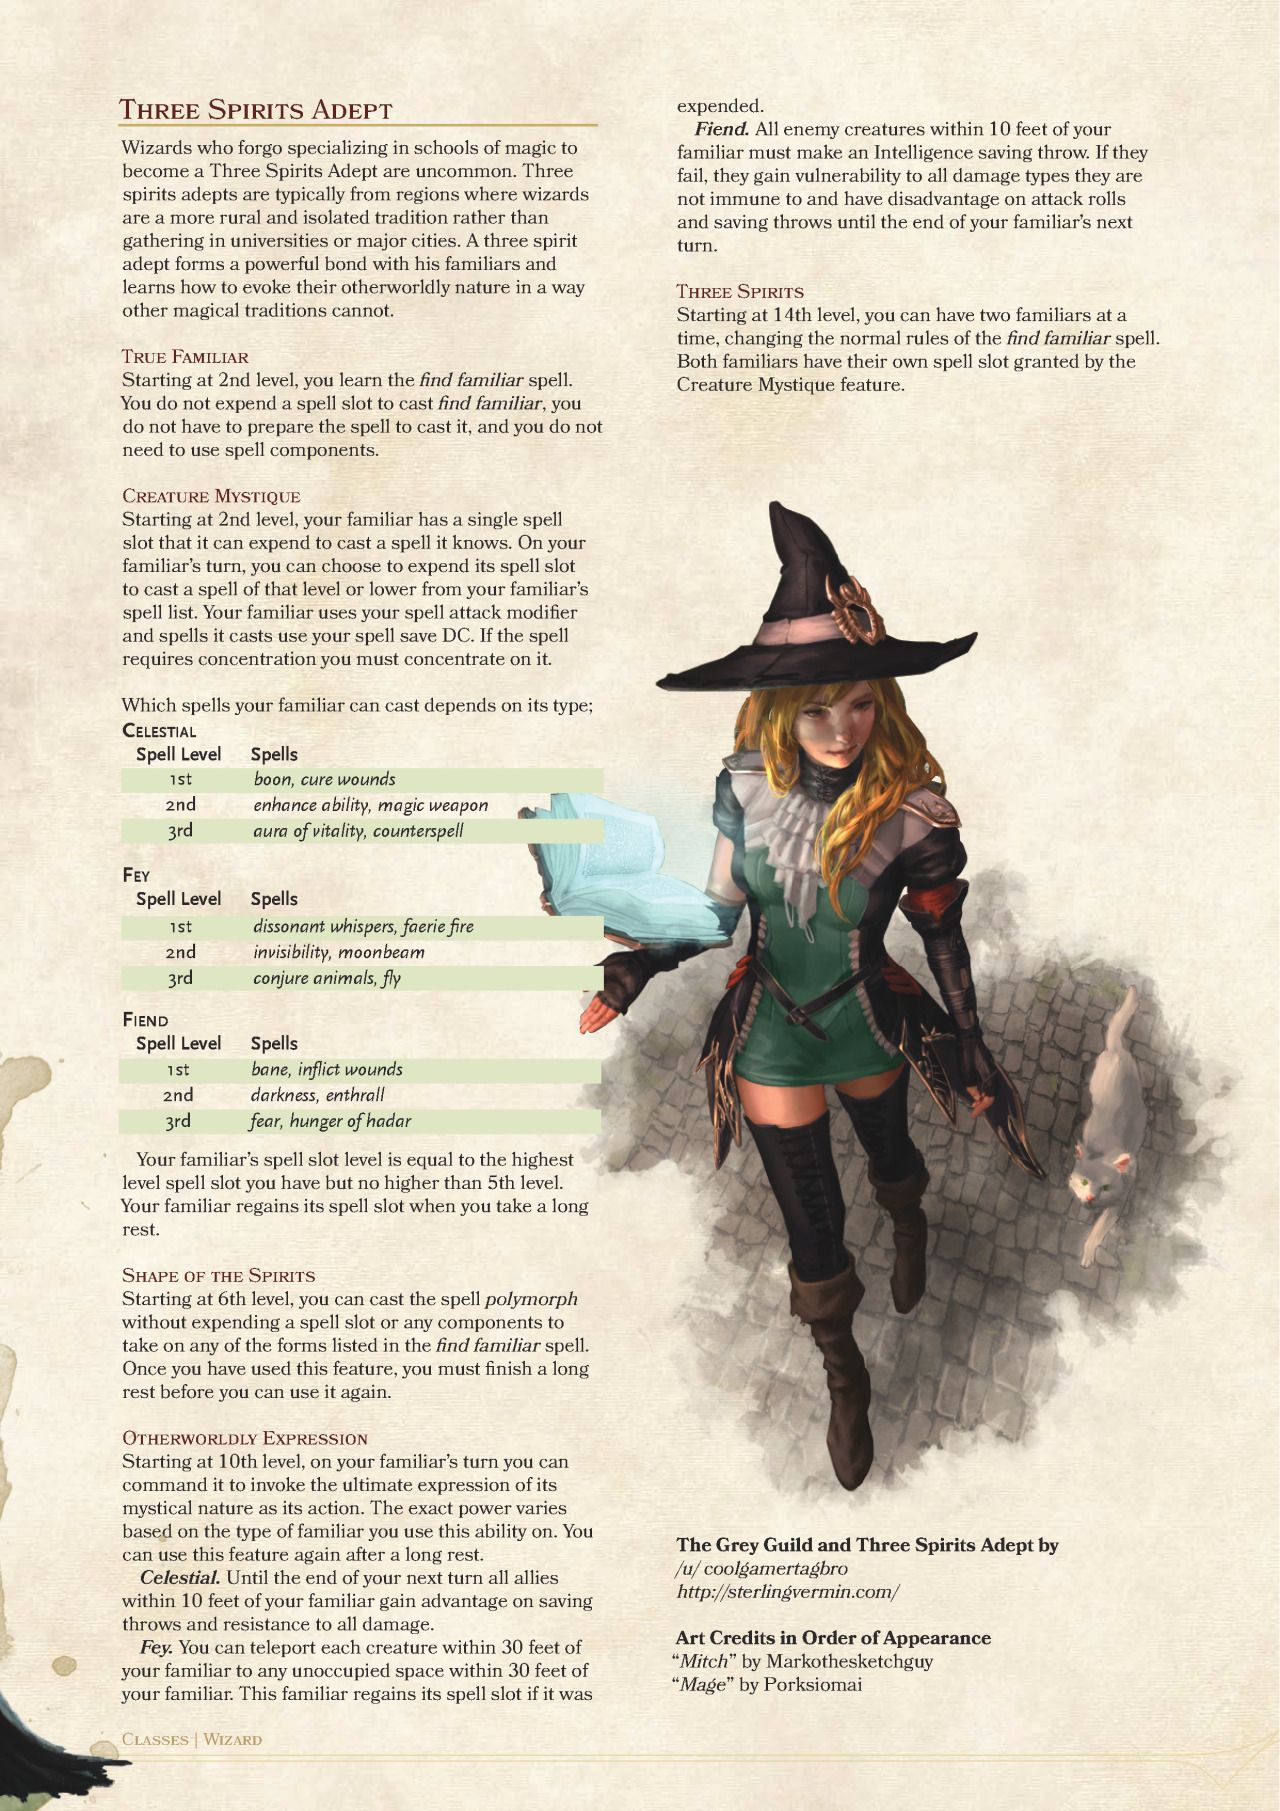 f70a3ae8f38 DnD 5e Homebrew — Grey Guild and Three Spirits Adept Wizards by ...